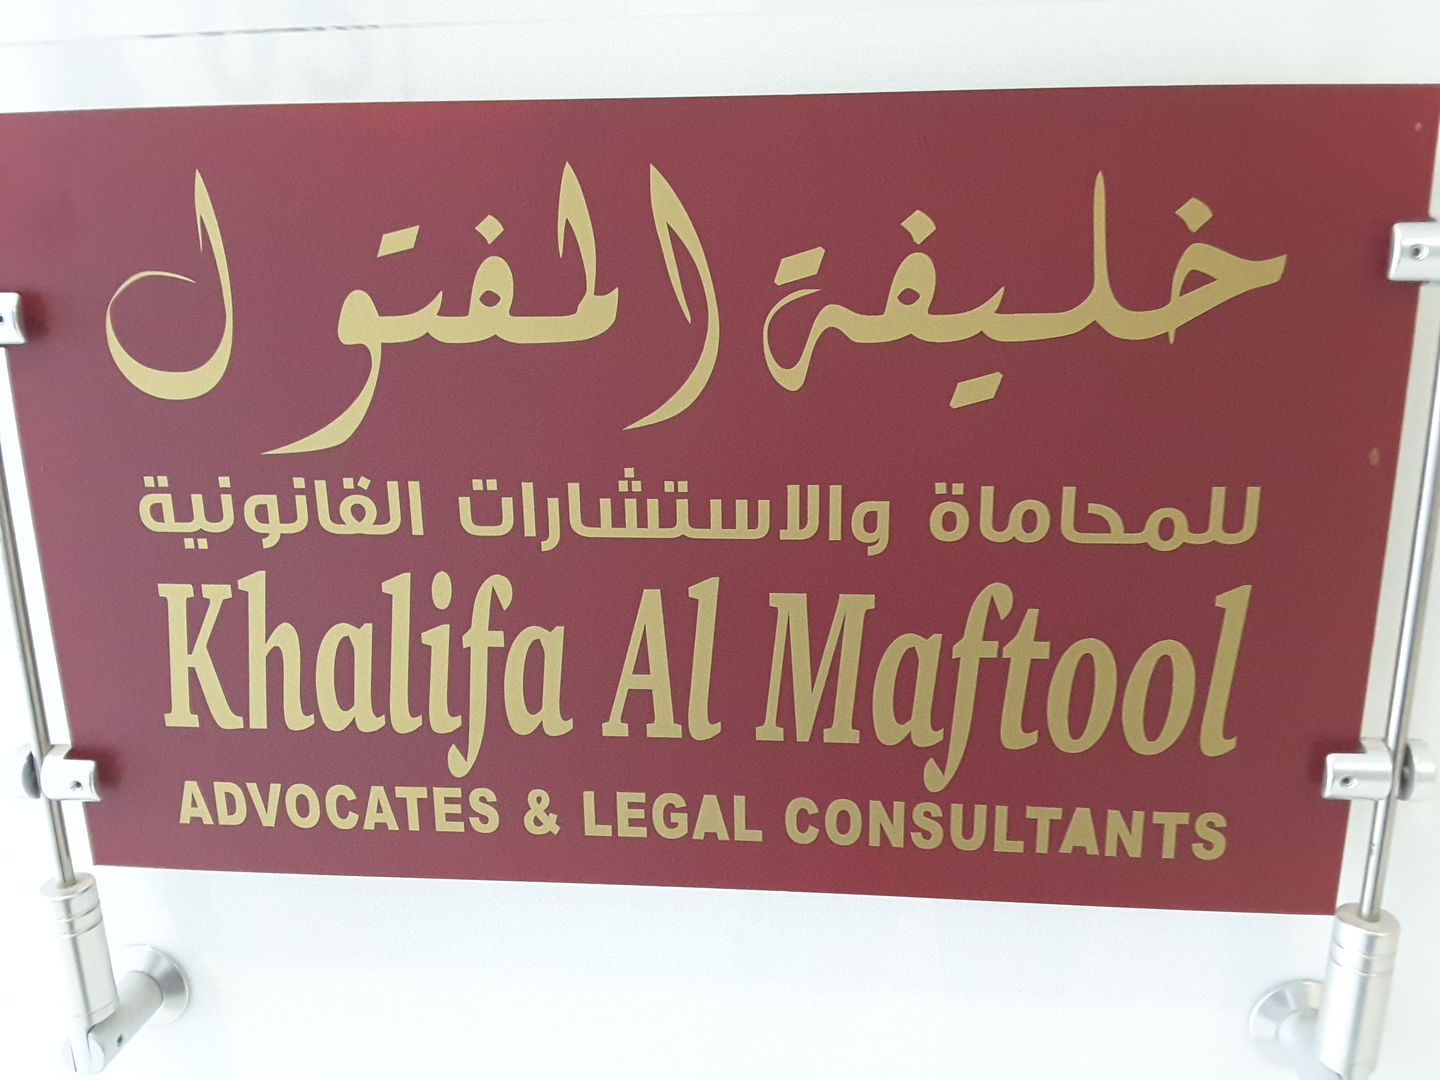 HiDubai-business-khalifa-al-maftool-advocates-legal-consultants-finance-legal-legal-services-port-saeed-dubai-2